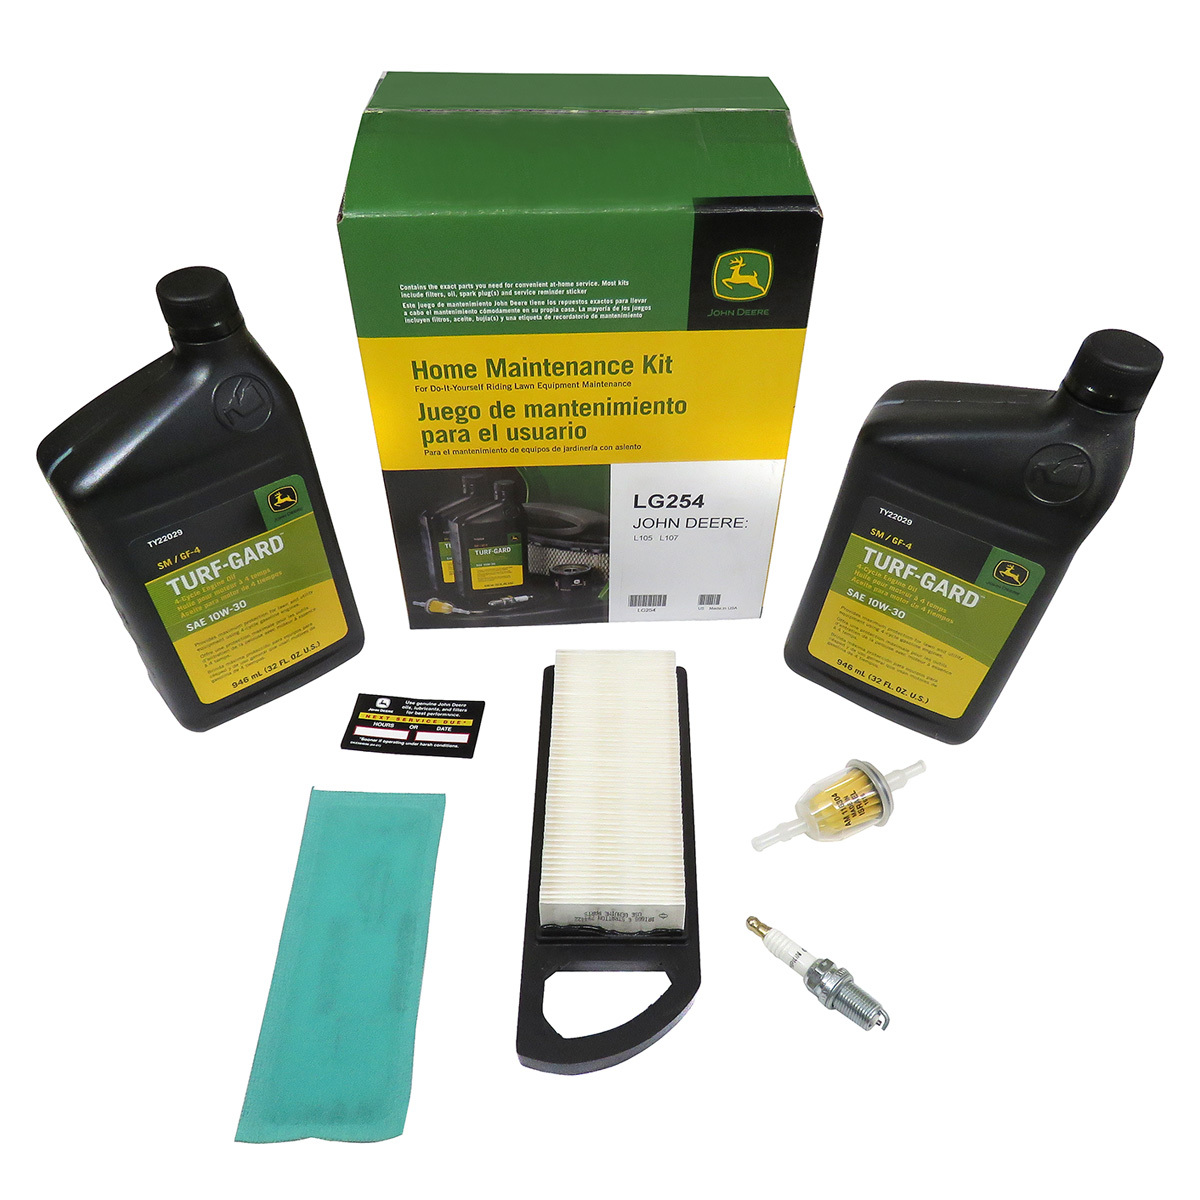 Home Maintenance Kit for 105 or 107